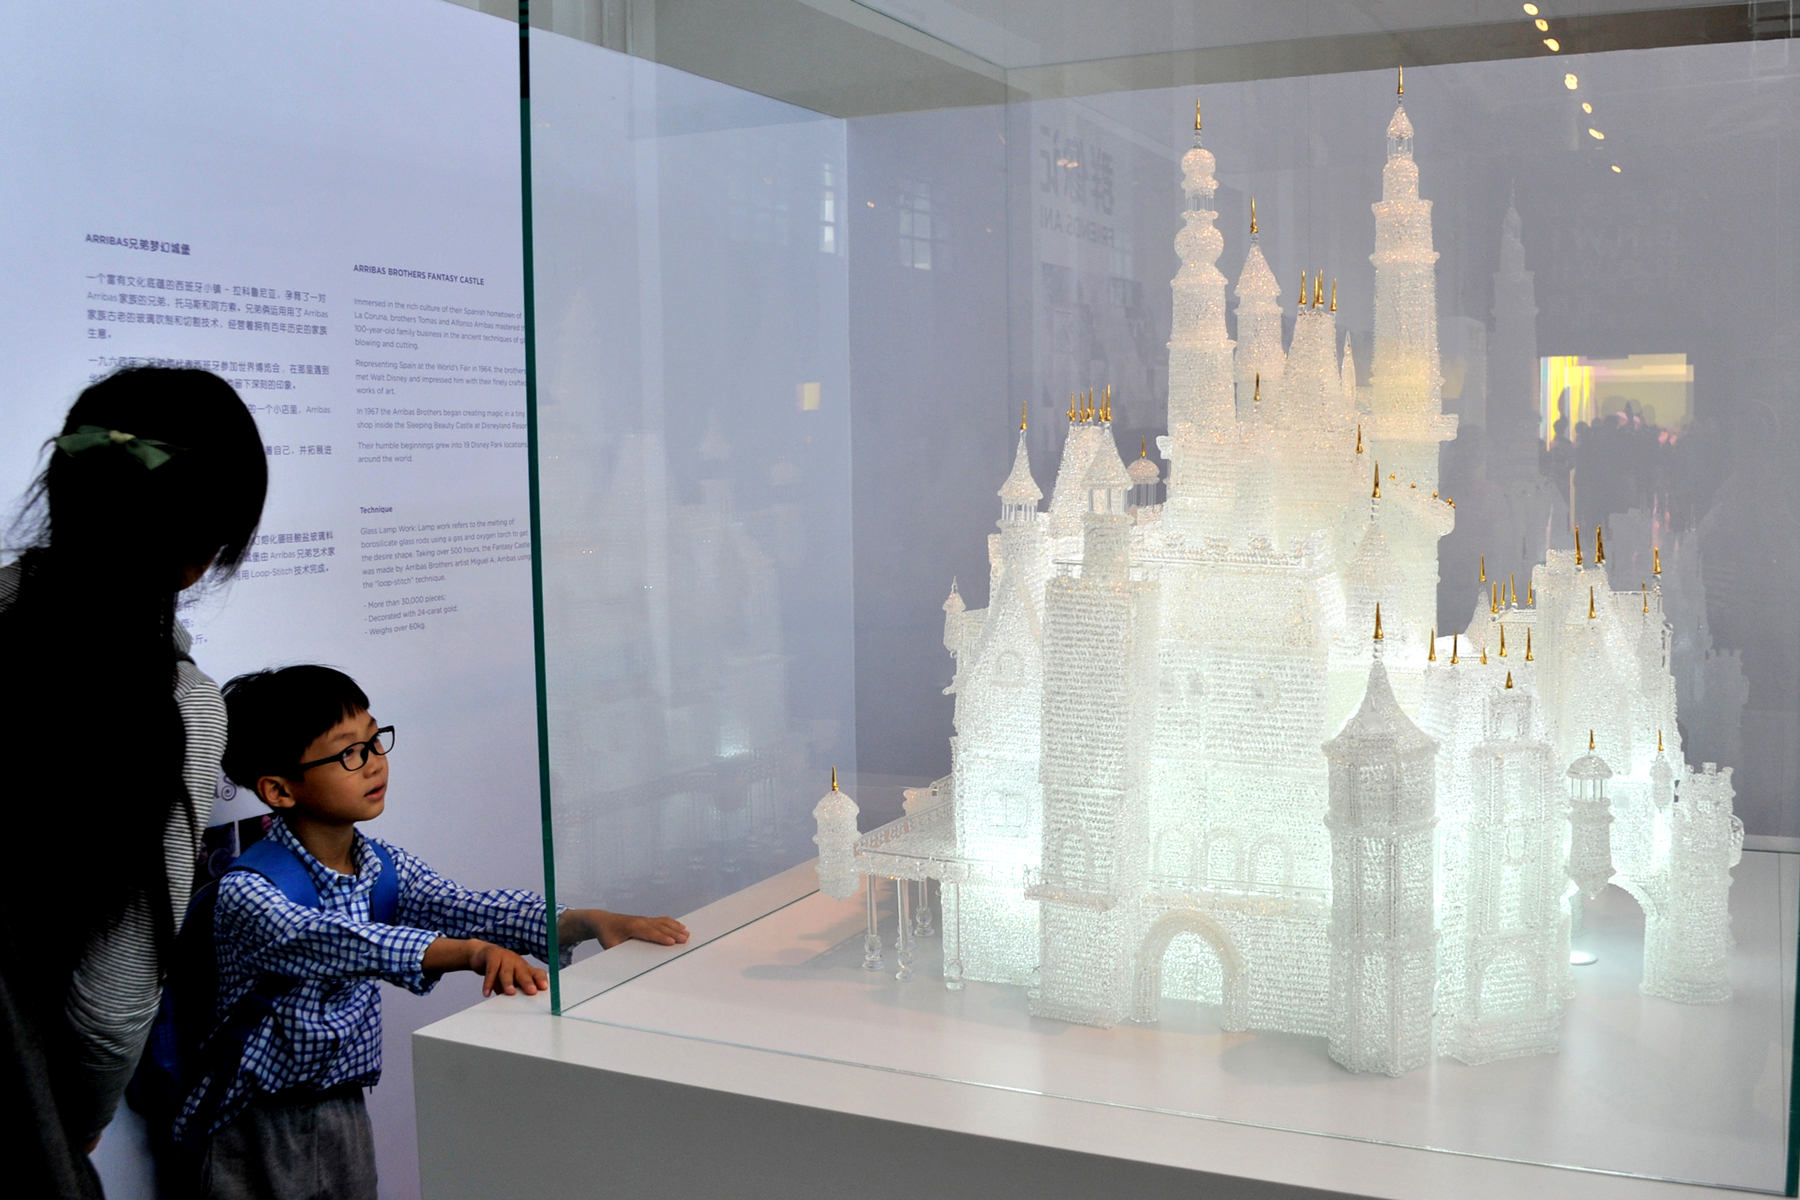 Citizens and visitors look a glass sculpture of Disney castle at Shanghai Museum of Glass during International Museum Day on May 18, 2016 in Shanghai, China.